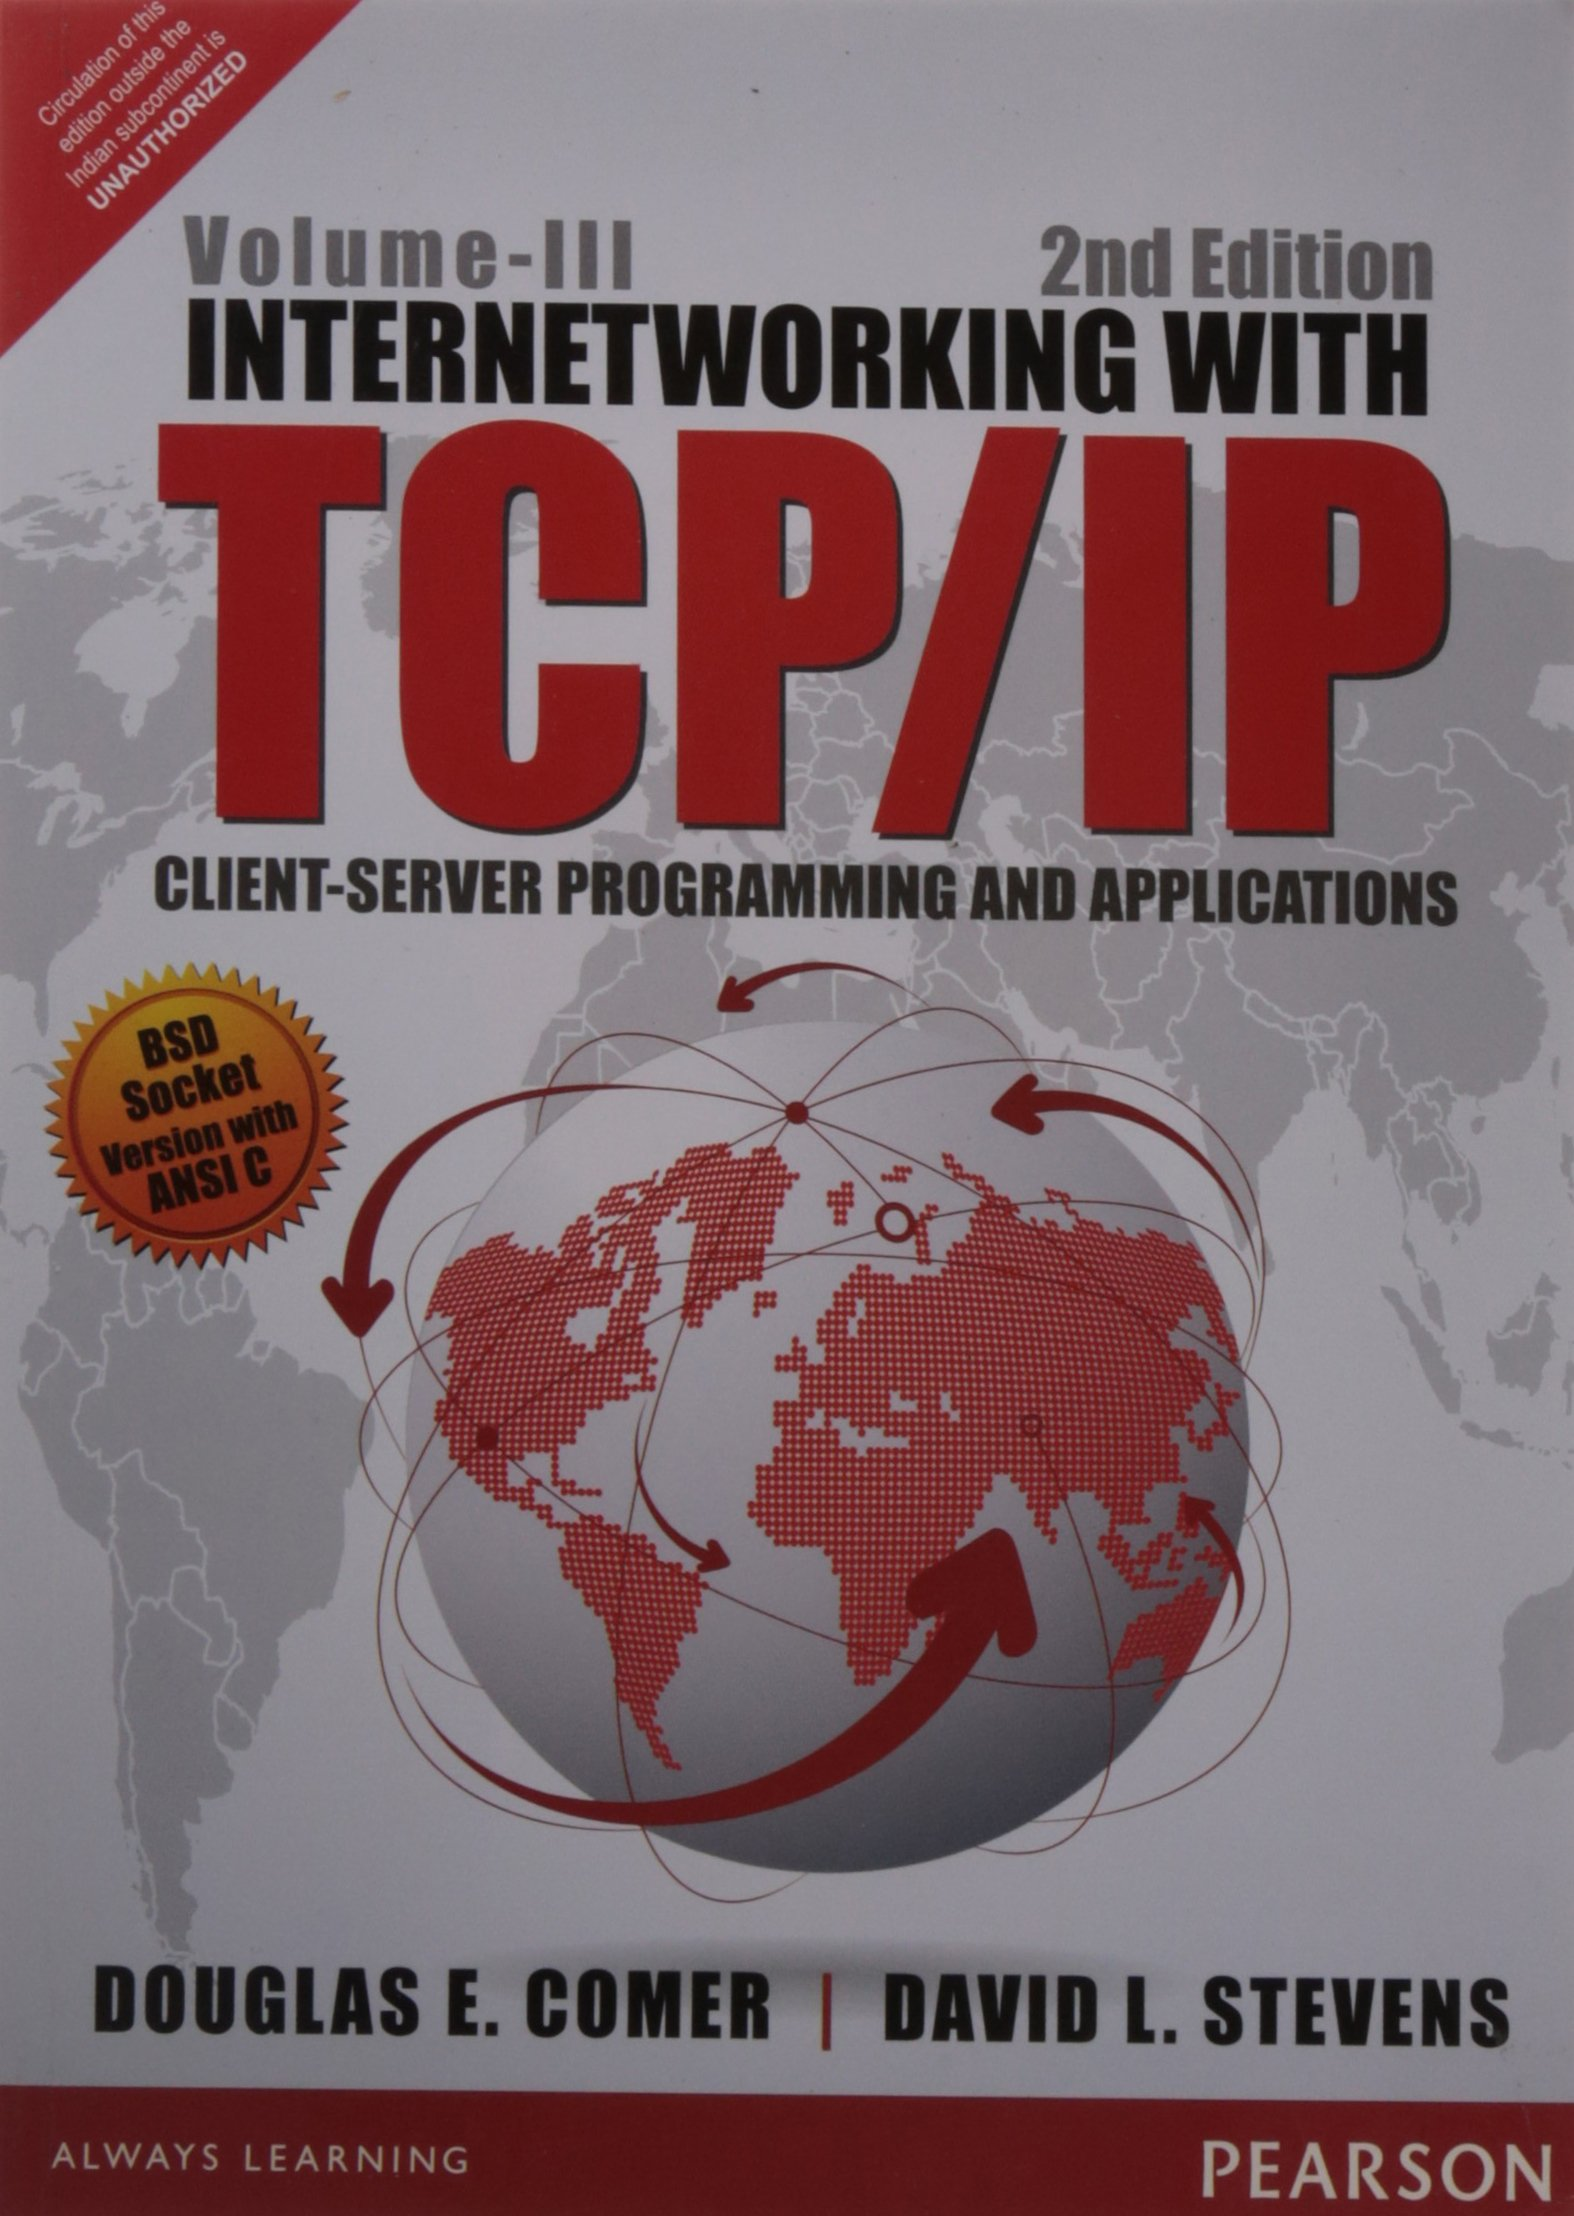 Internetworking with TCP/IP Client-Server Programming and Applications – Vol. 3